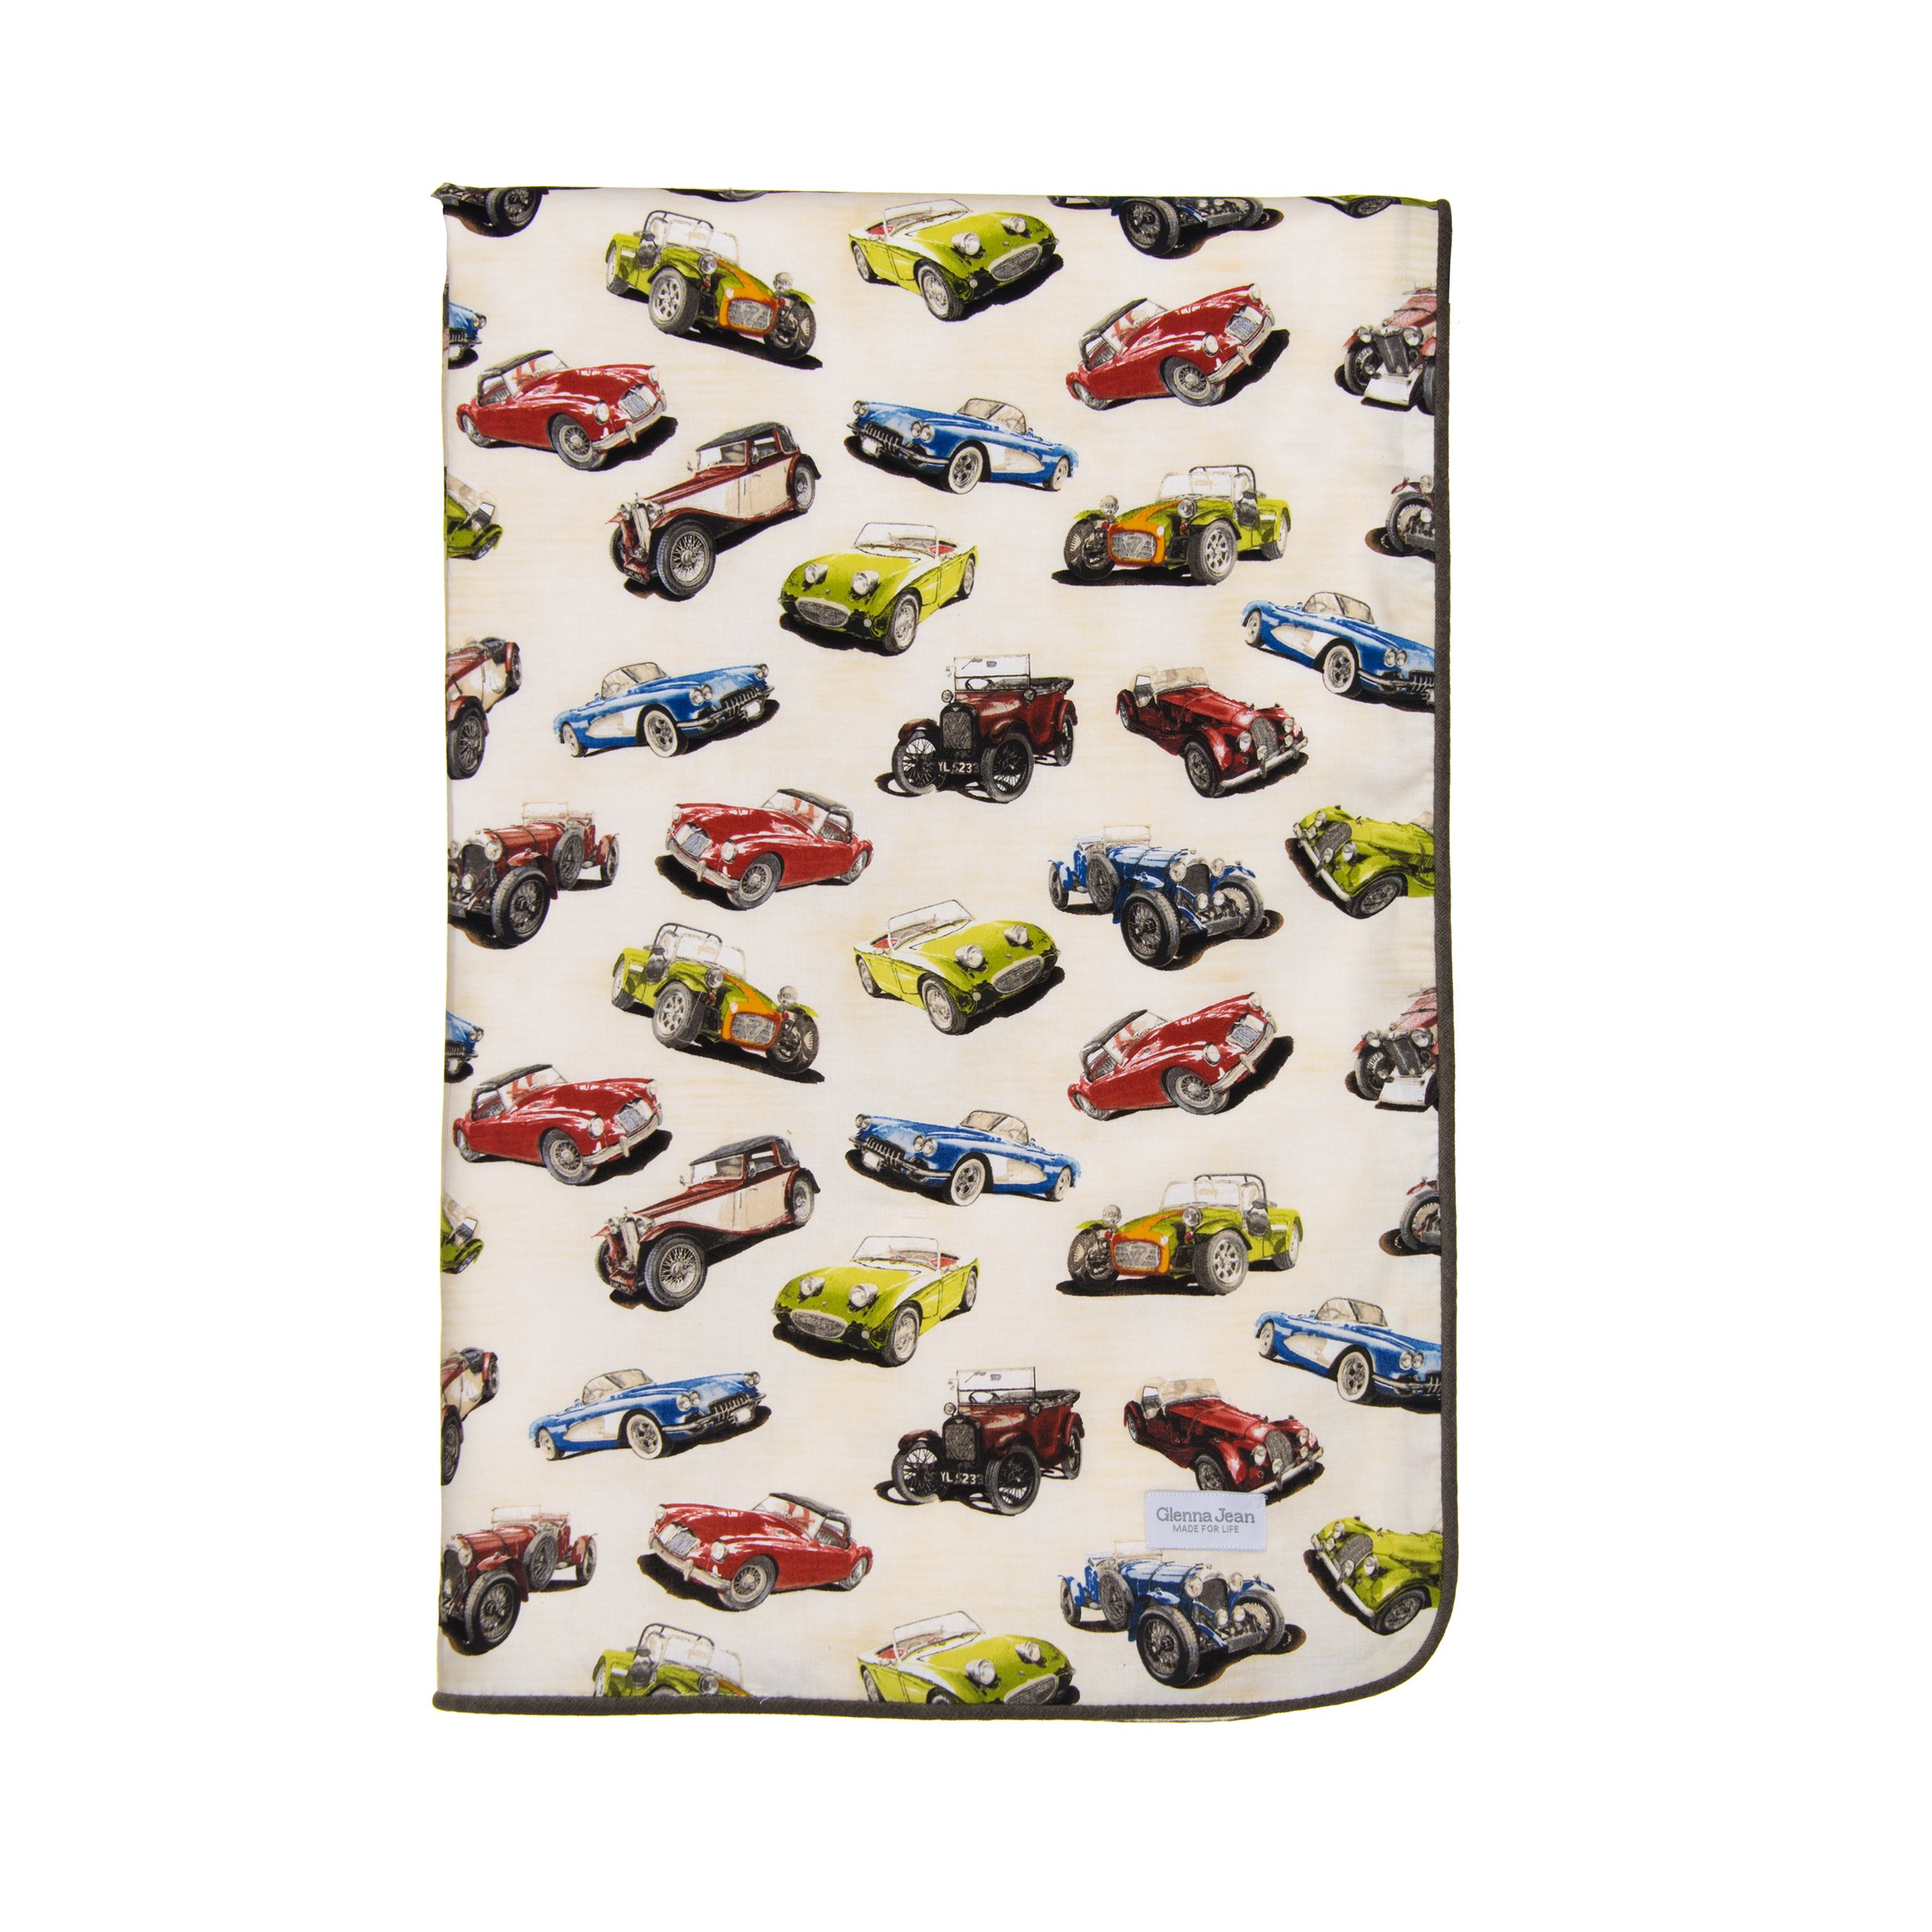 Glenna Jean Fast Track Quilt, Cars by Glenna Jean